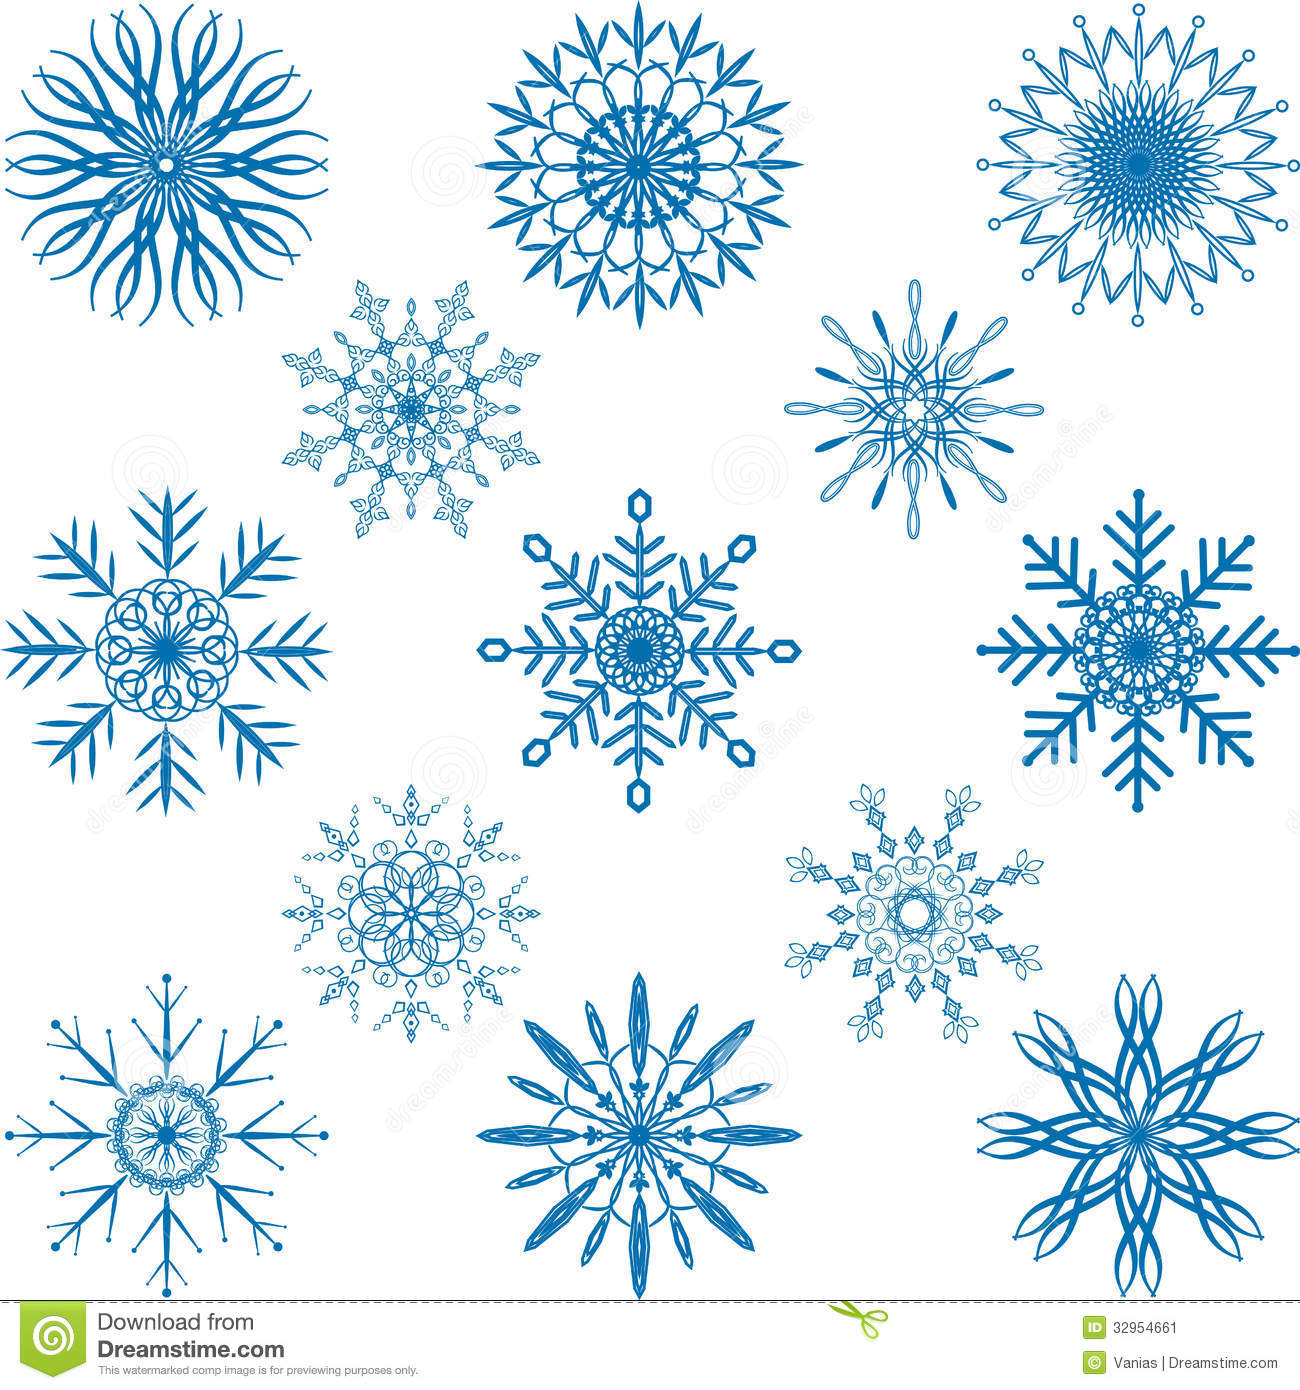 Snowflake Vector Set Stock Image - Image: 32954661